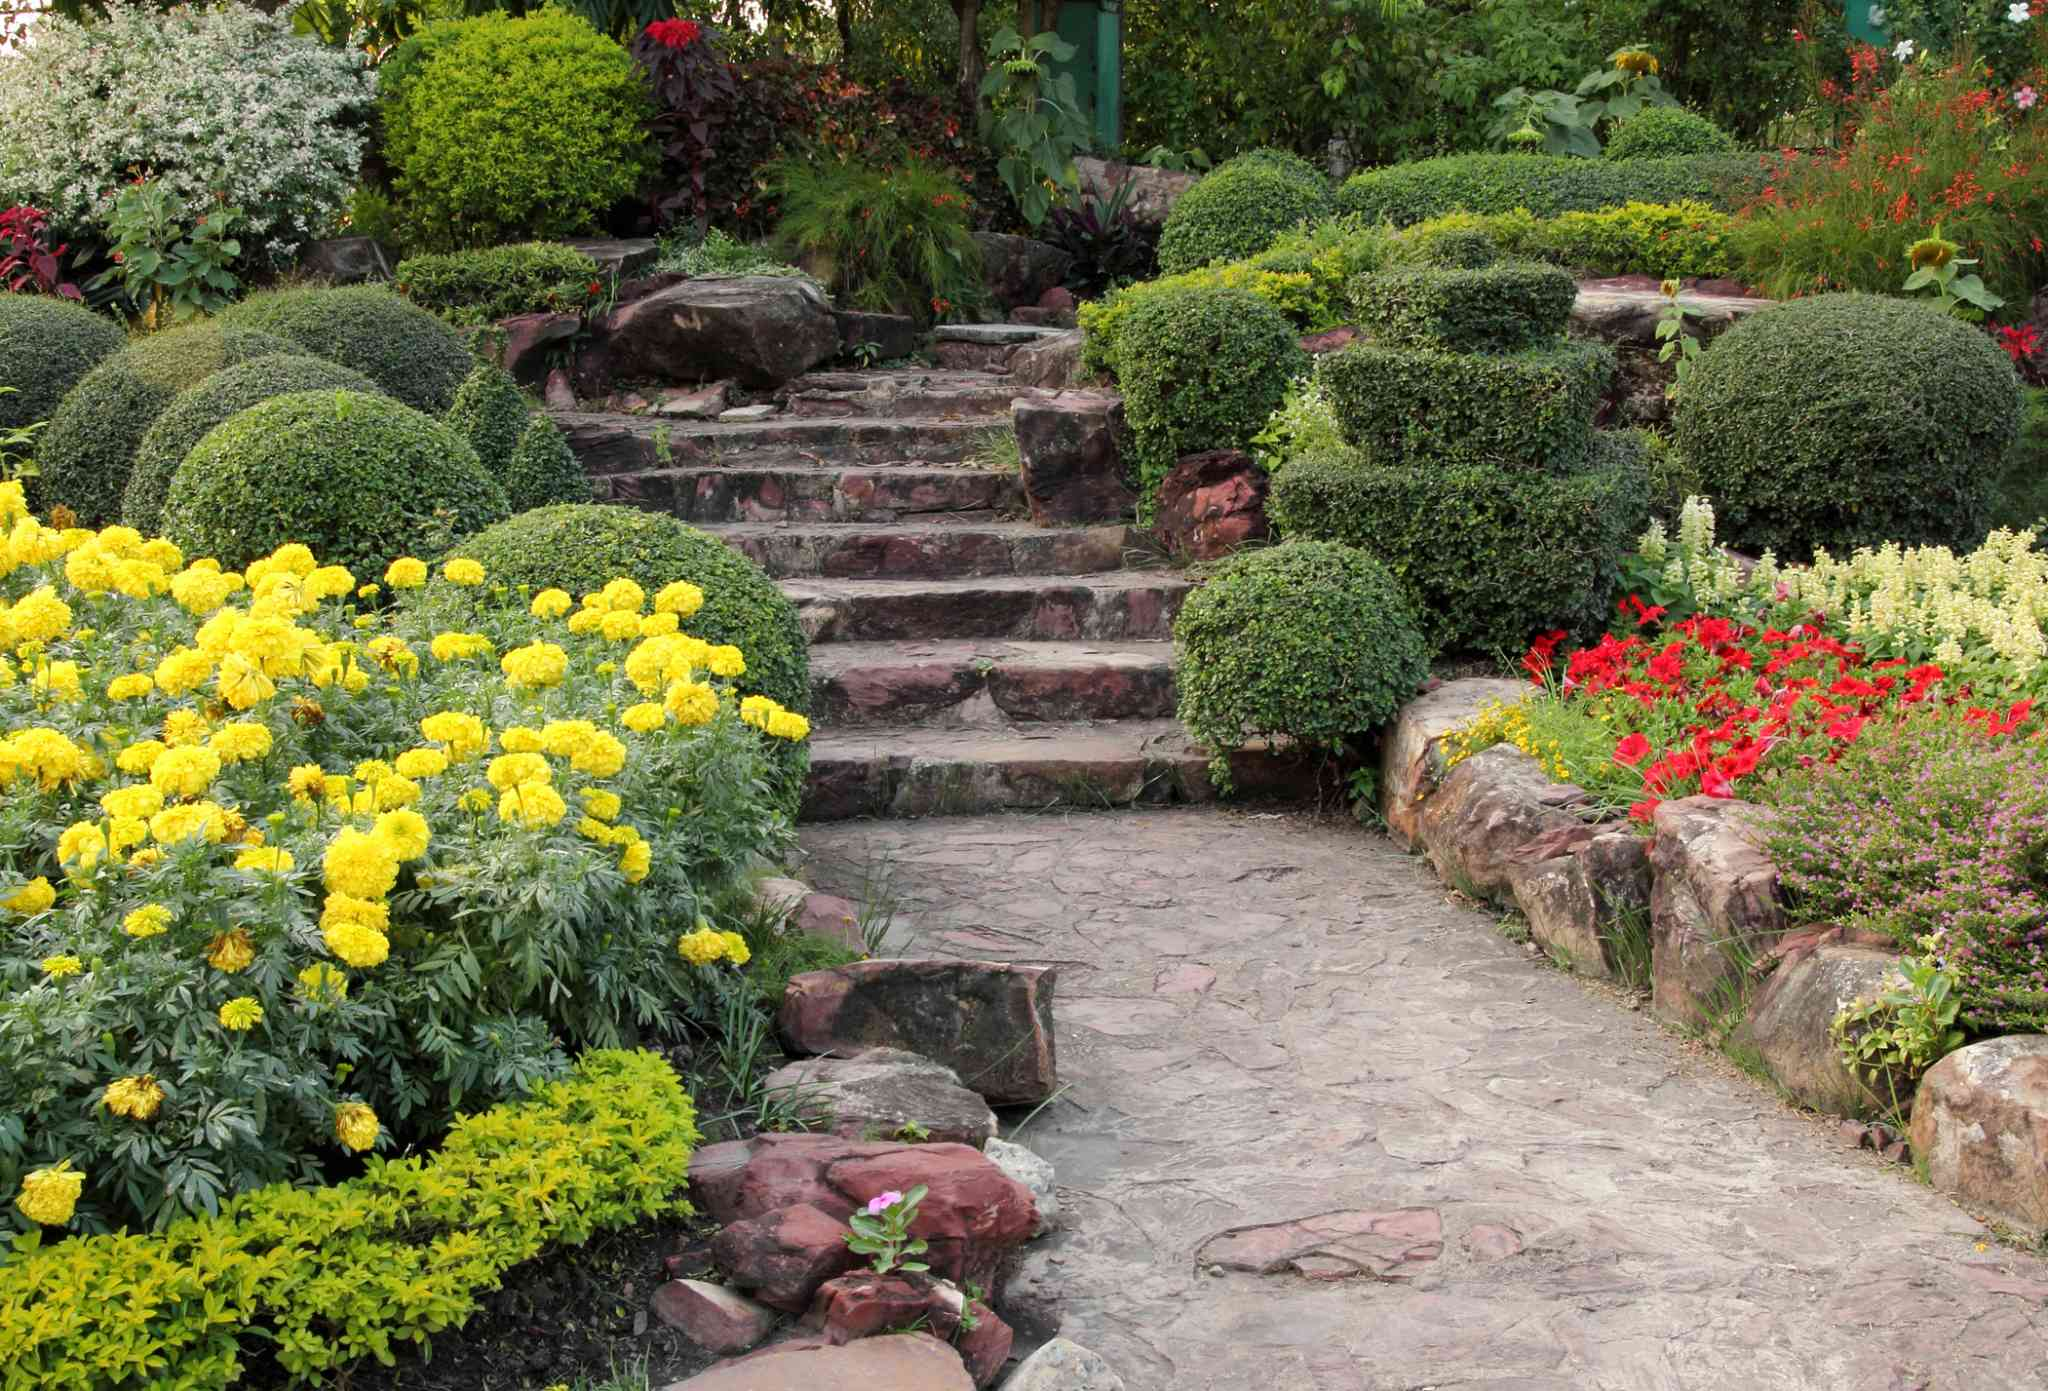 design a scenic walkway sweeping through your garden this summer